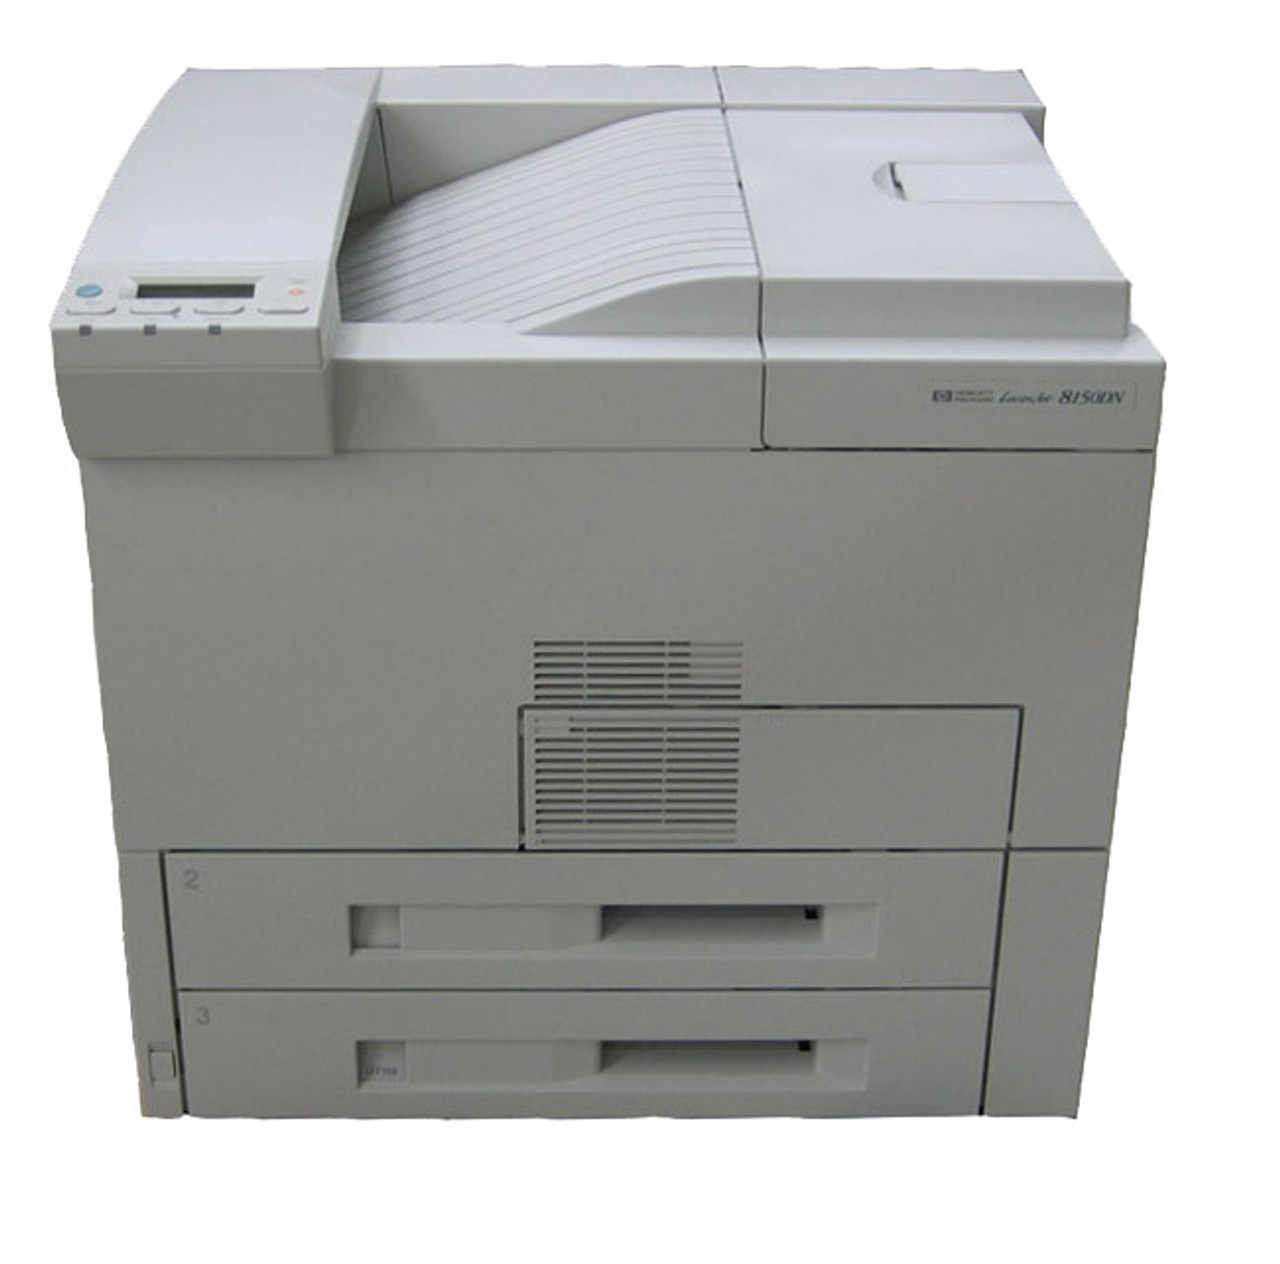 HP LaserJet 8150dn - C4267AR - HP Laser Printer for sale